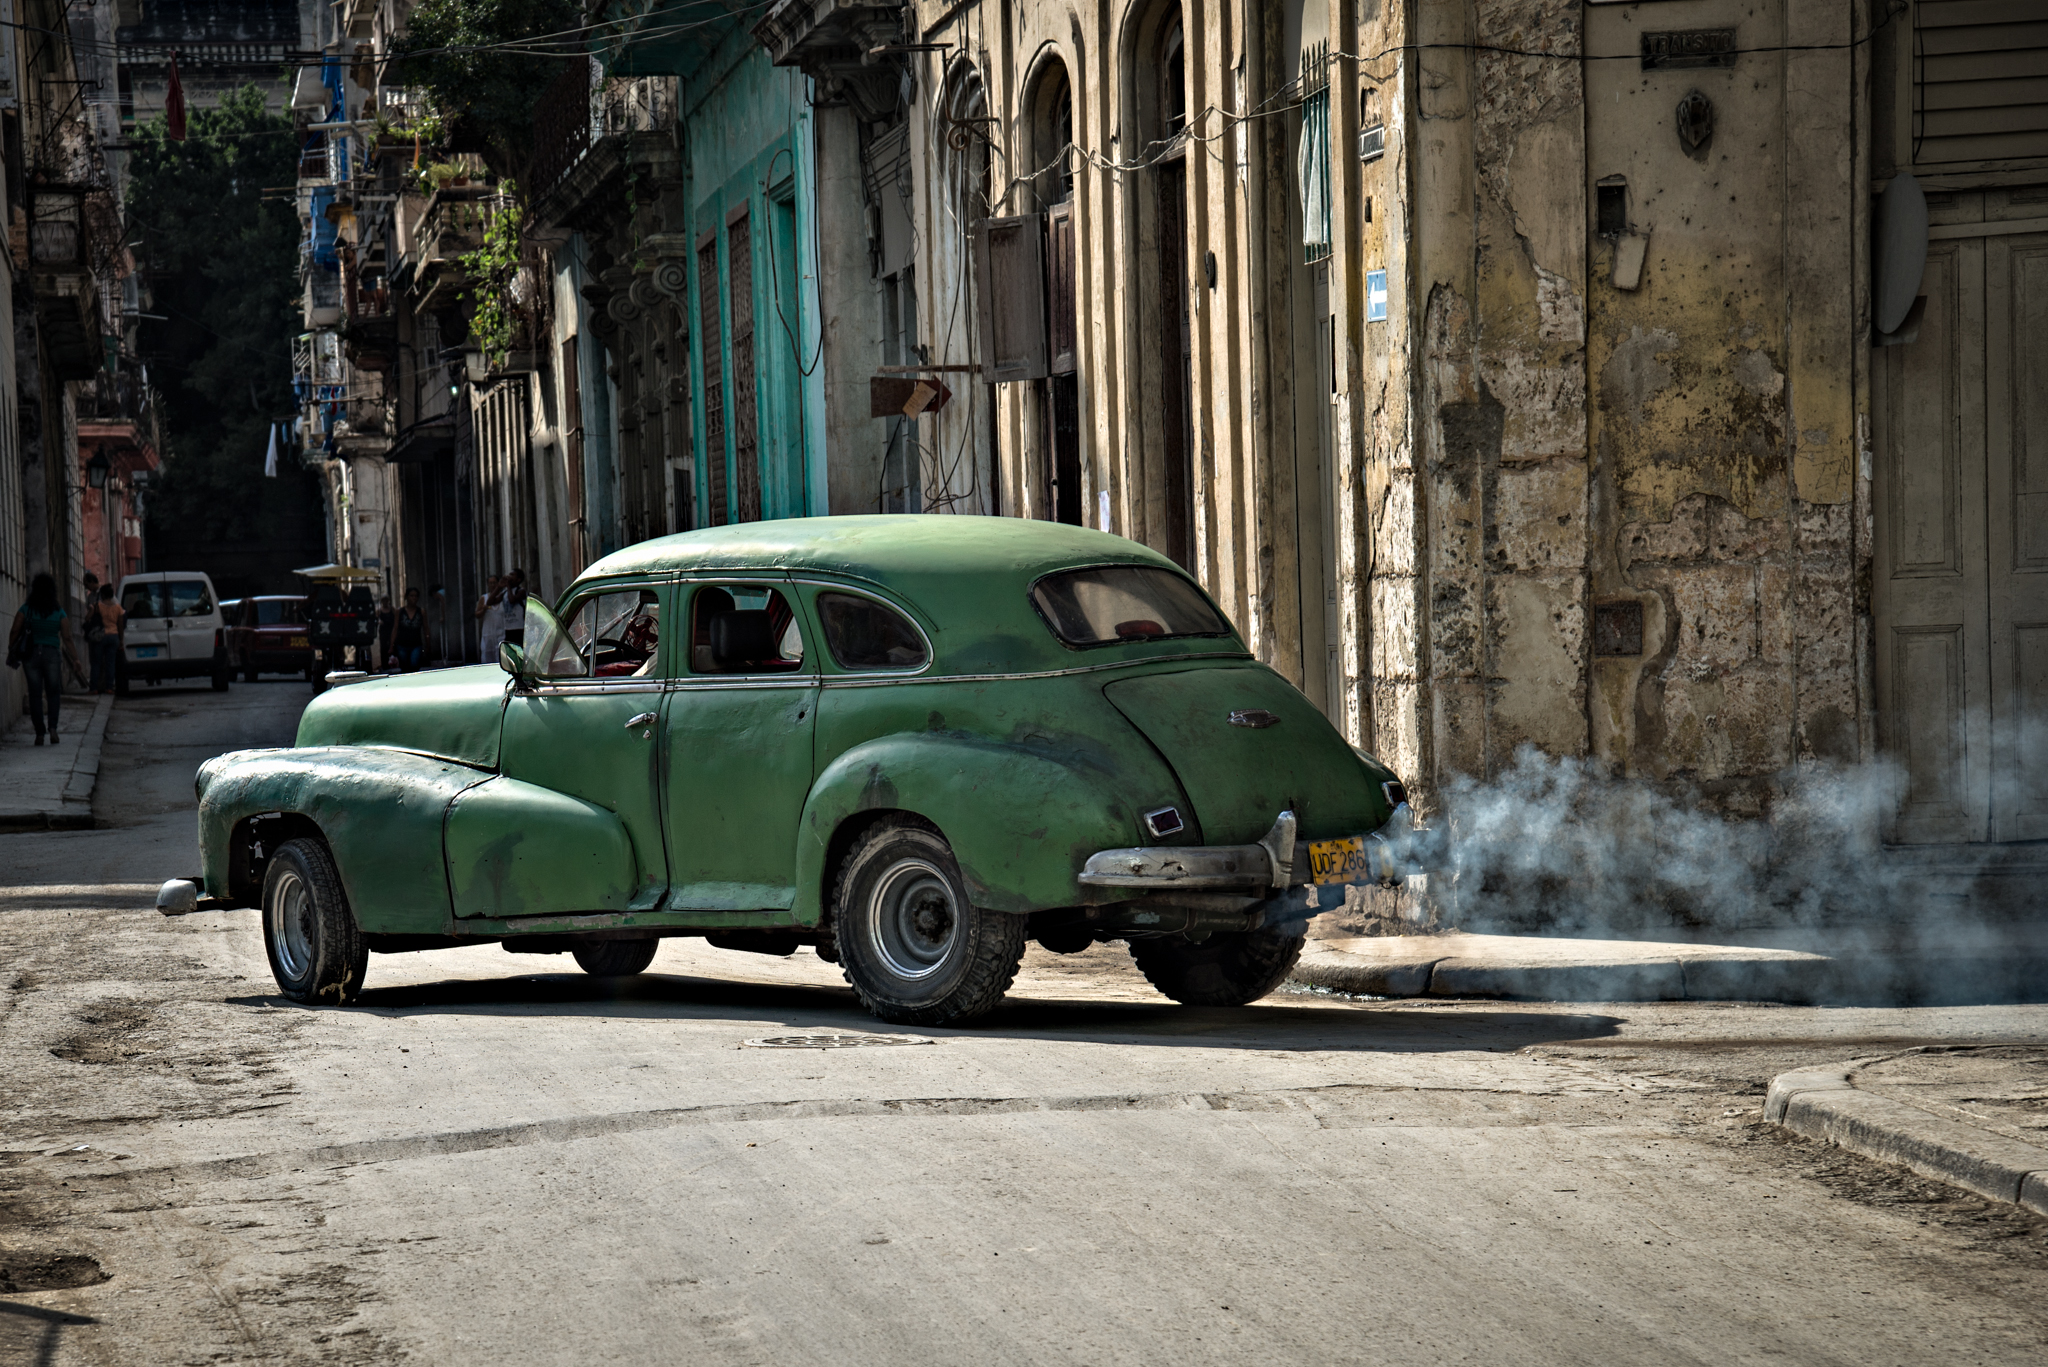 Turn the Corner - Havana - 2013